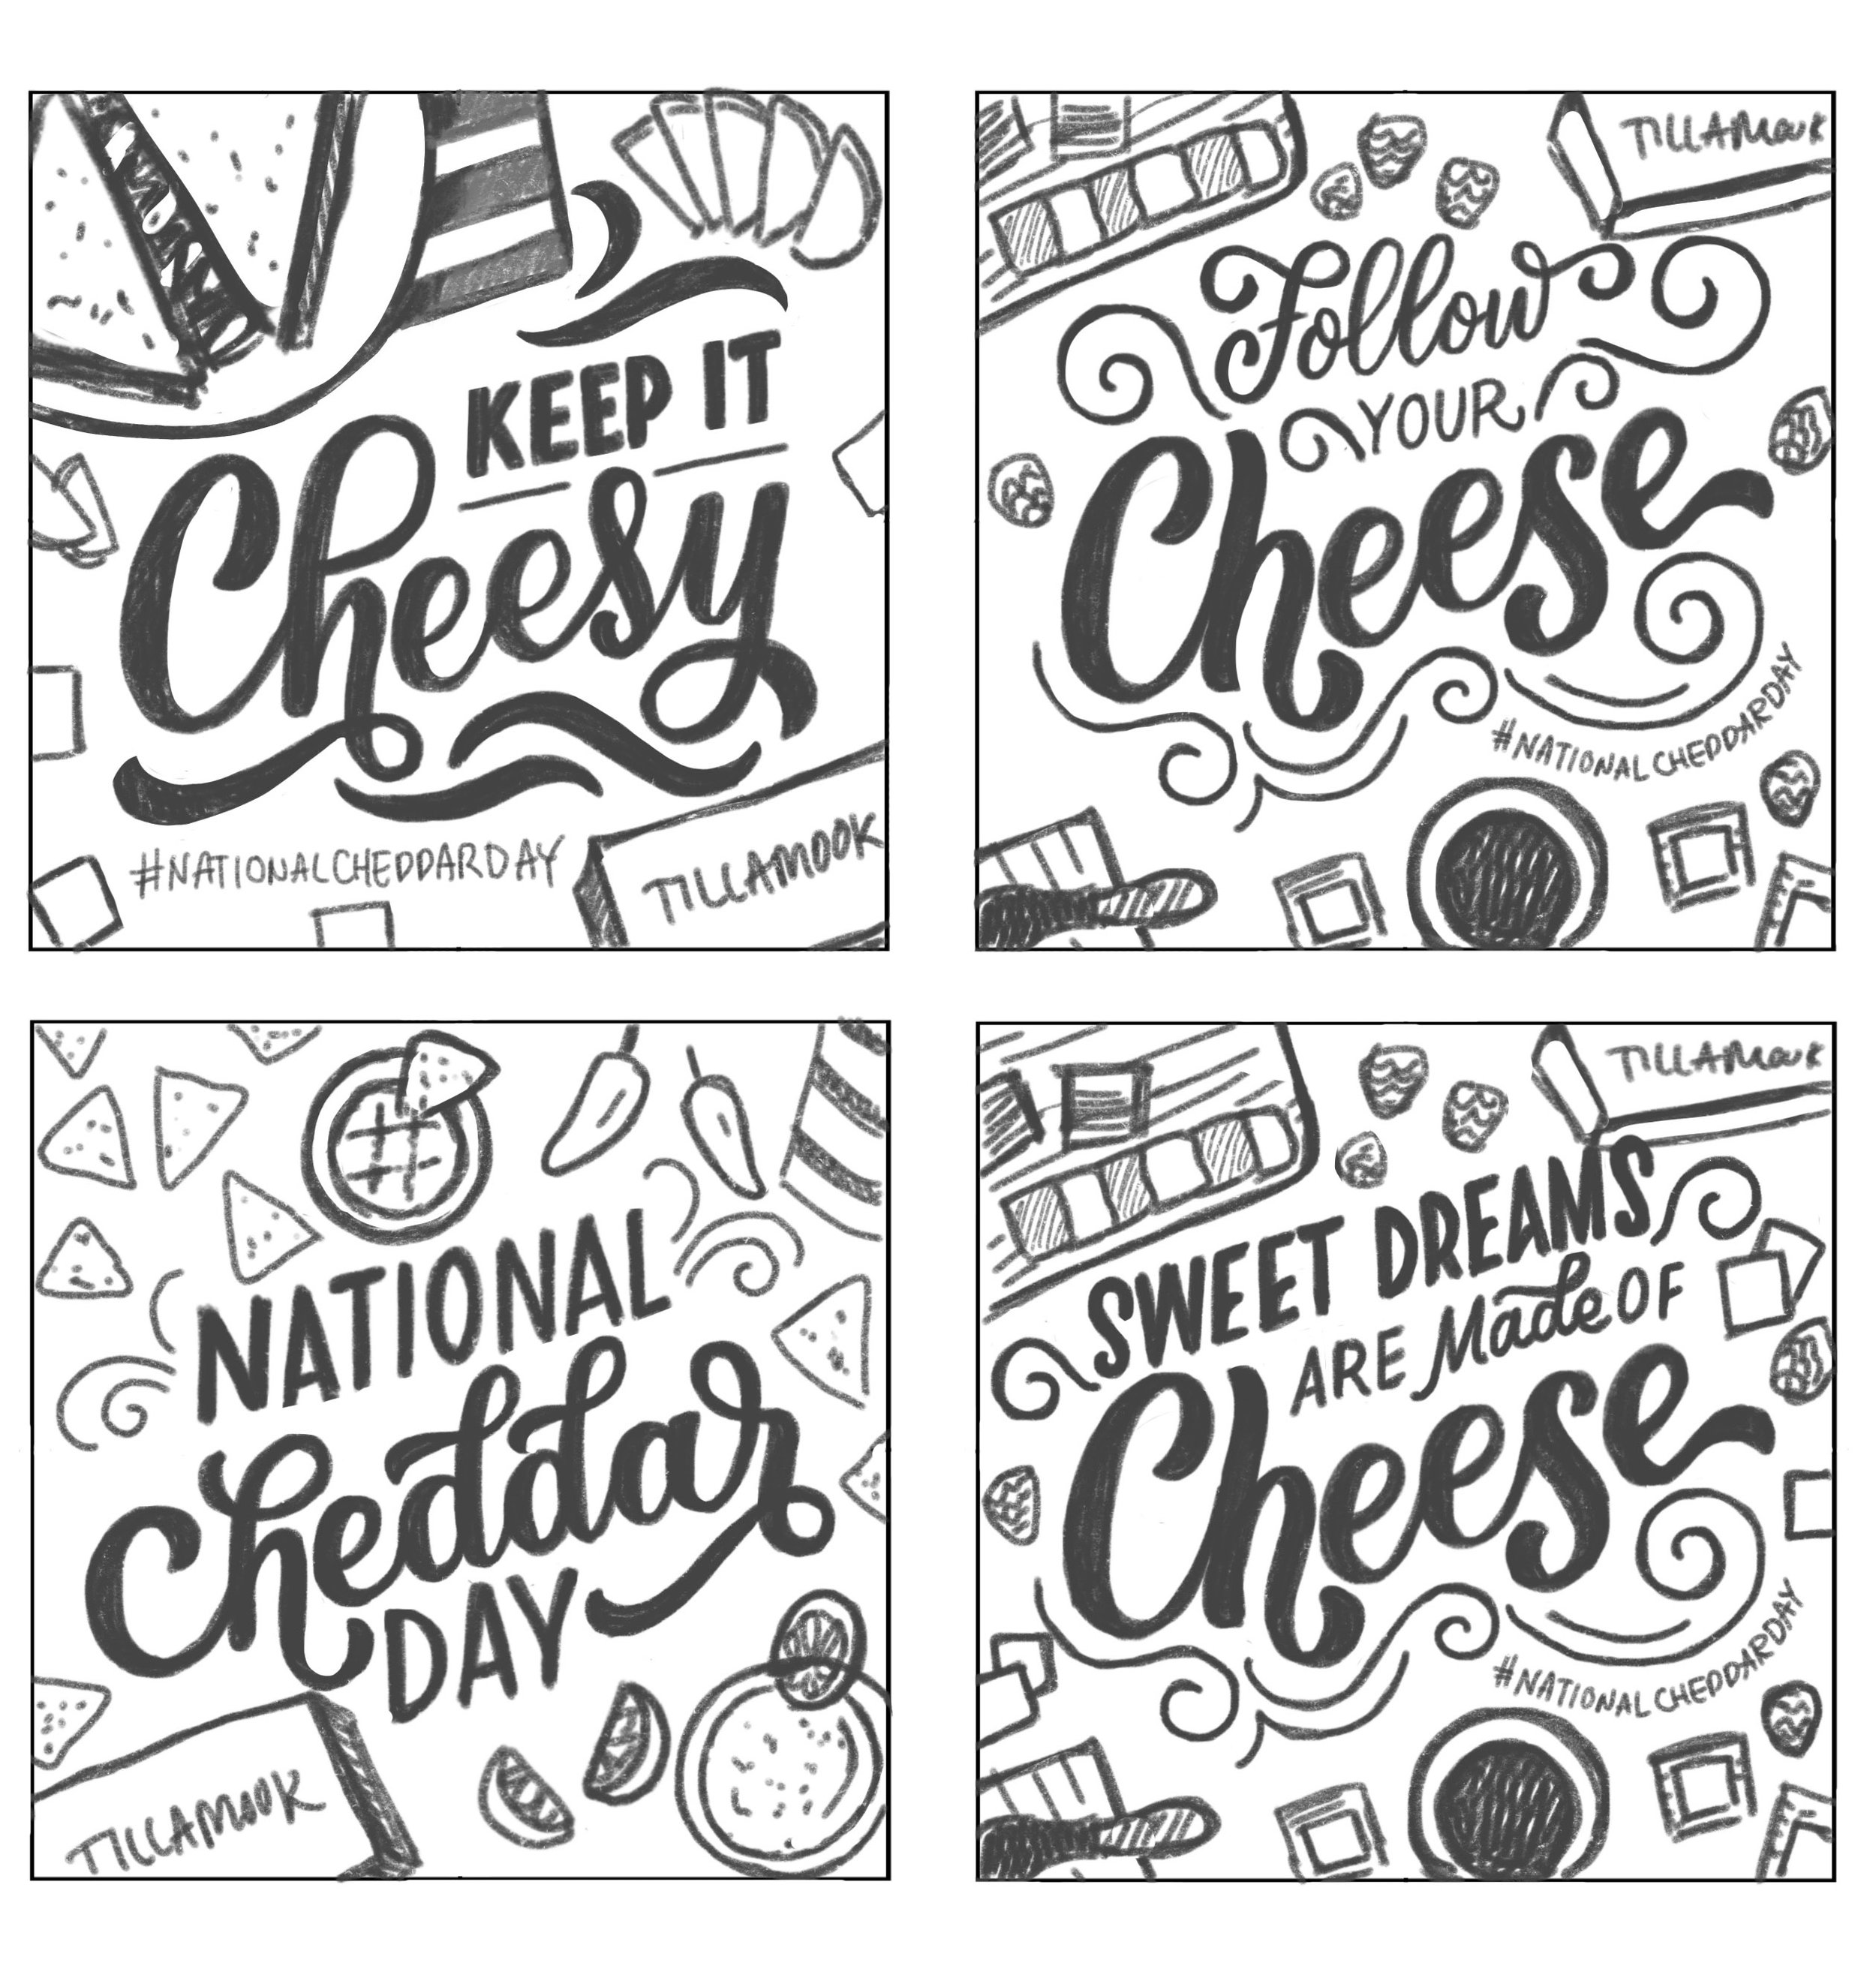 Initial rough sketches I provided to Tillamook with various themes for how to celebrate National Cheddar Day.